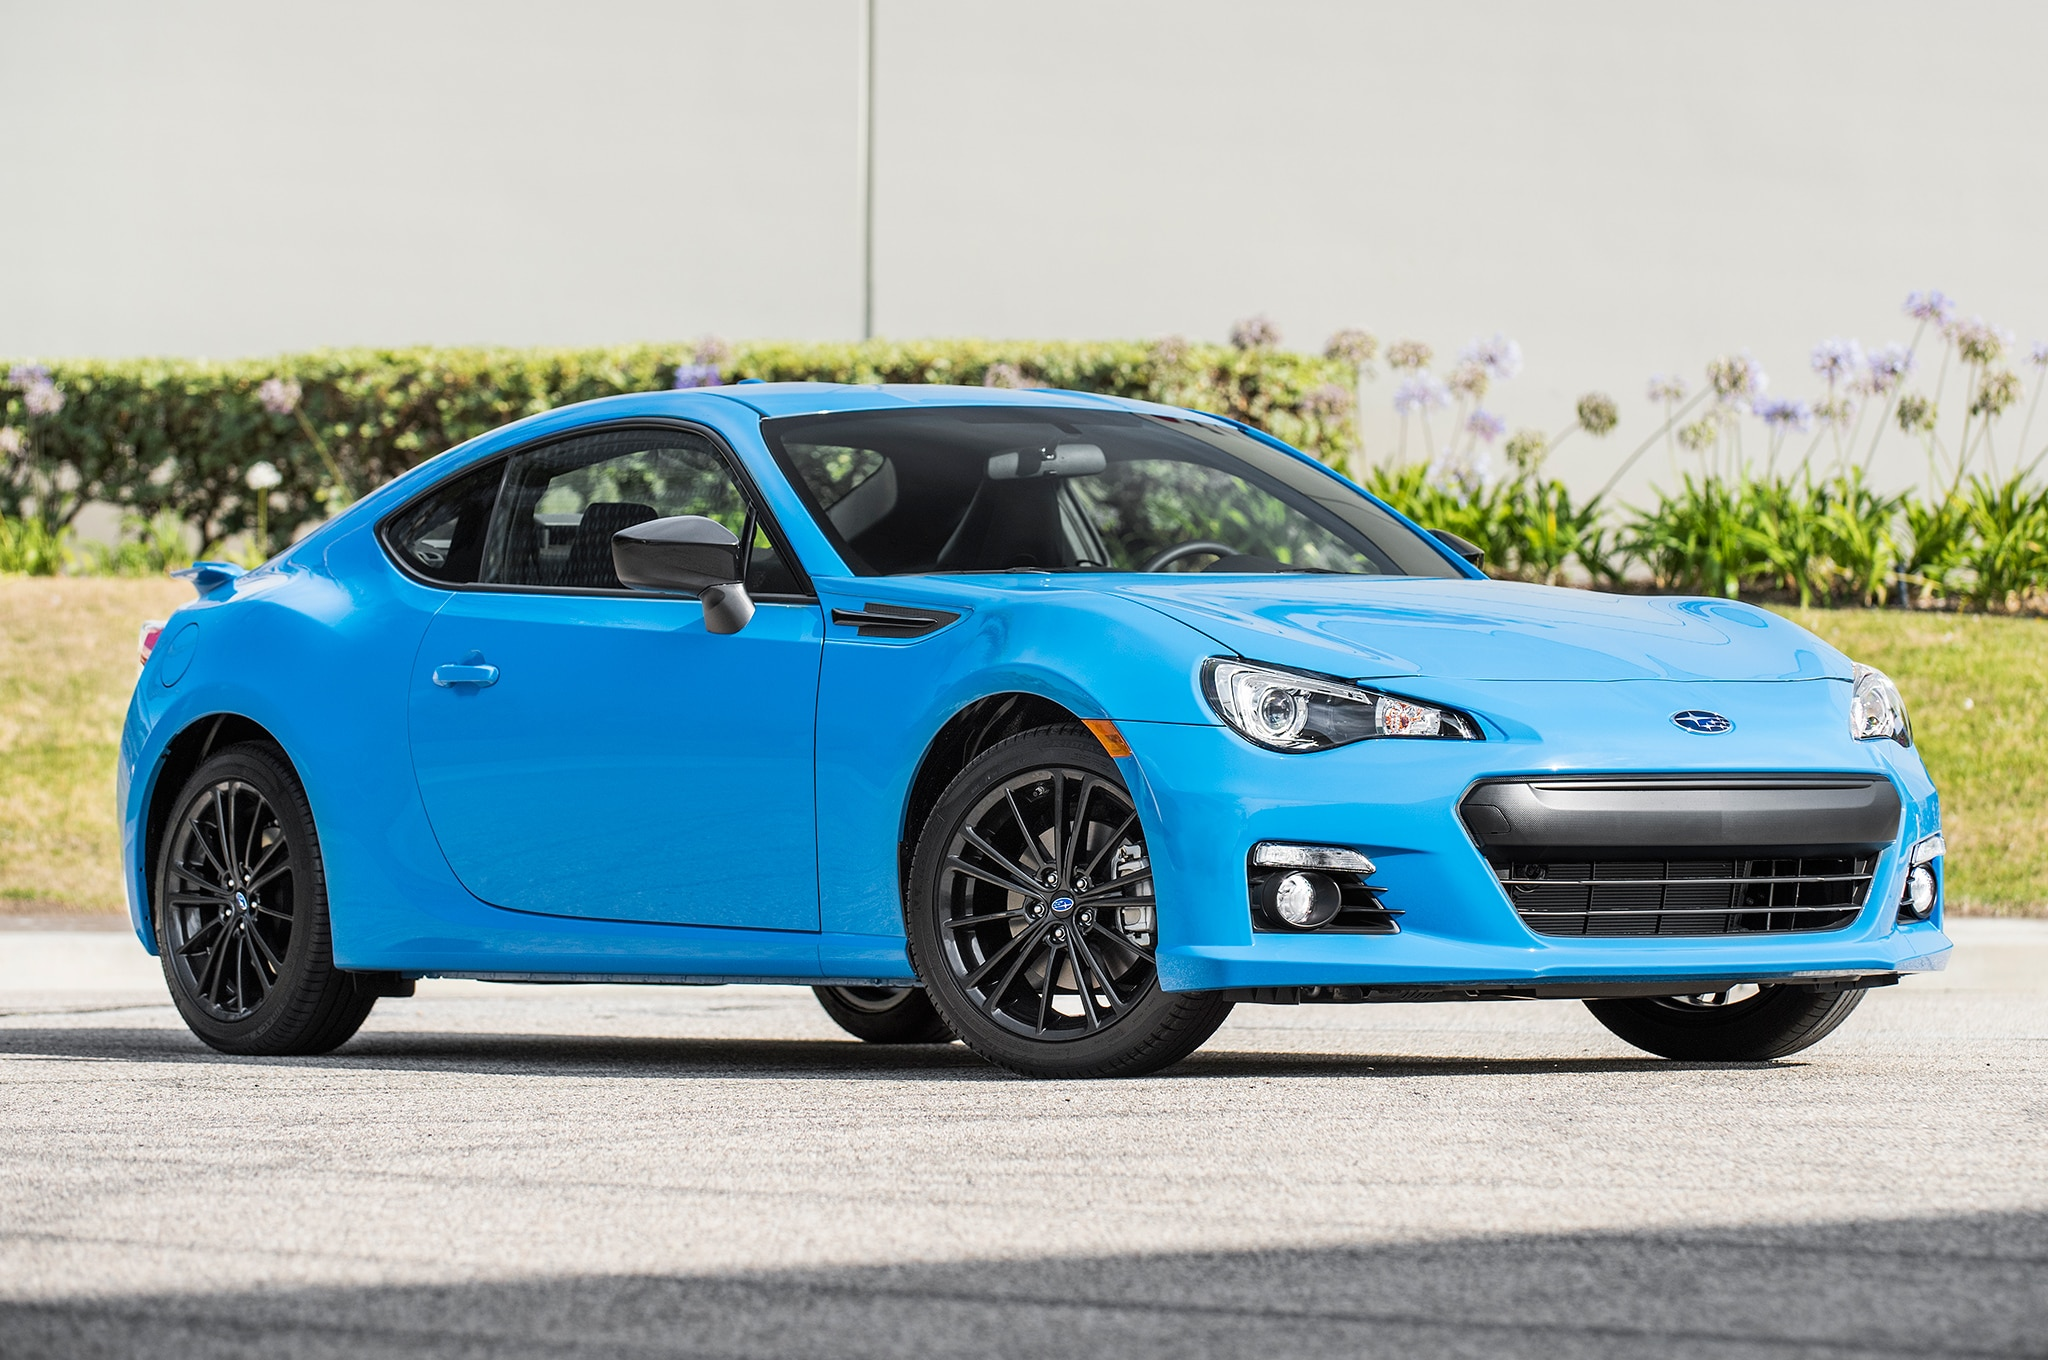 2015 Subaru Crosstrek For Sale >> 2016 Subaru BRZ, WRX STI Add HyperBlue Special Edition